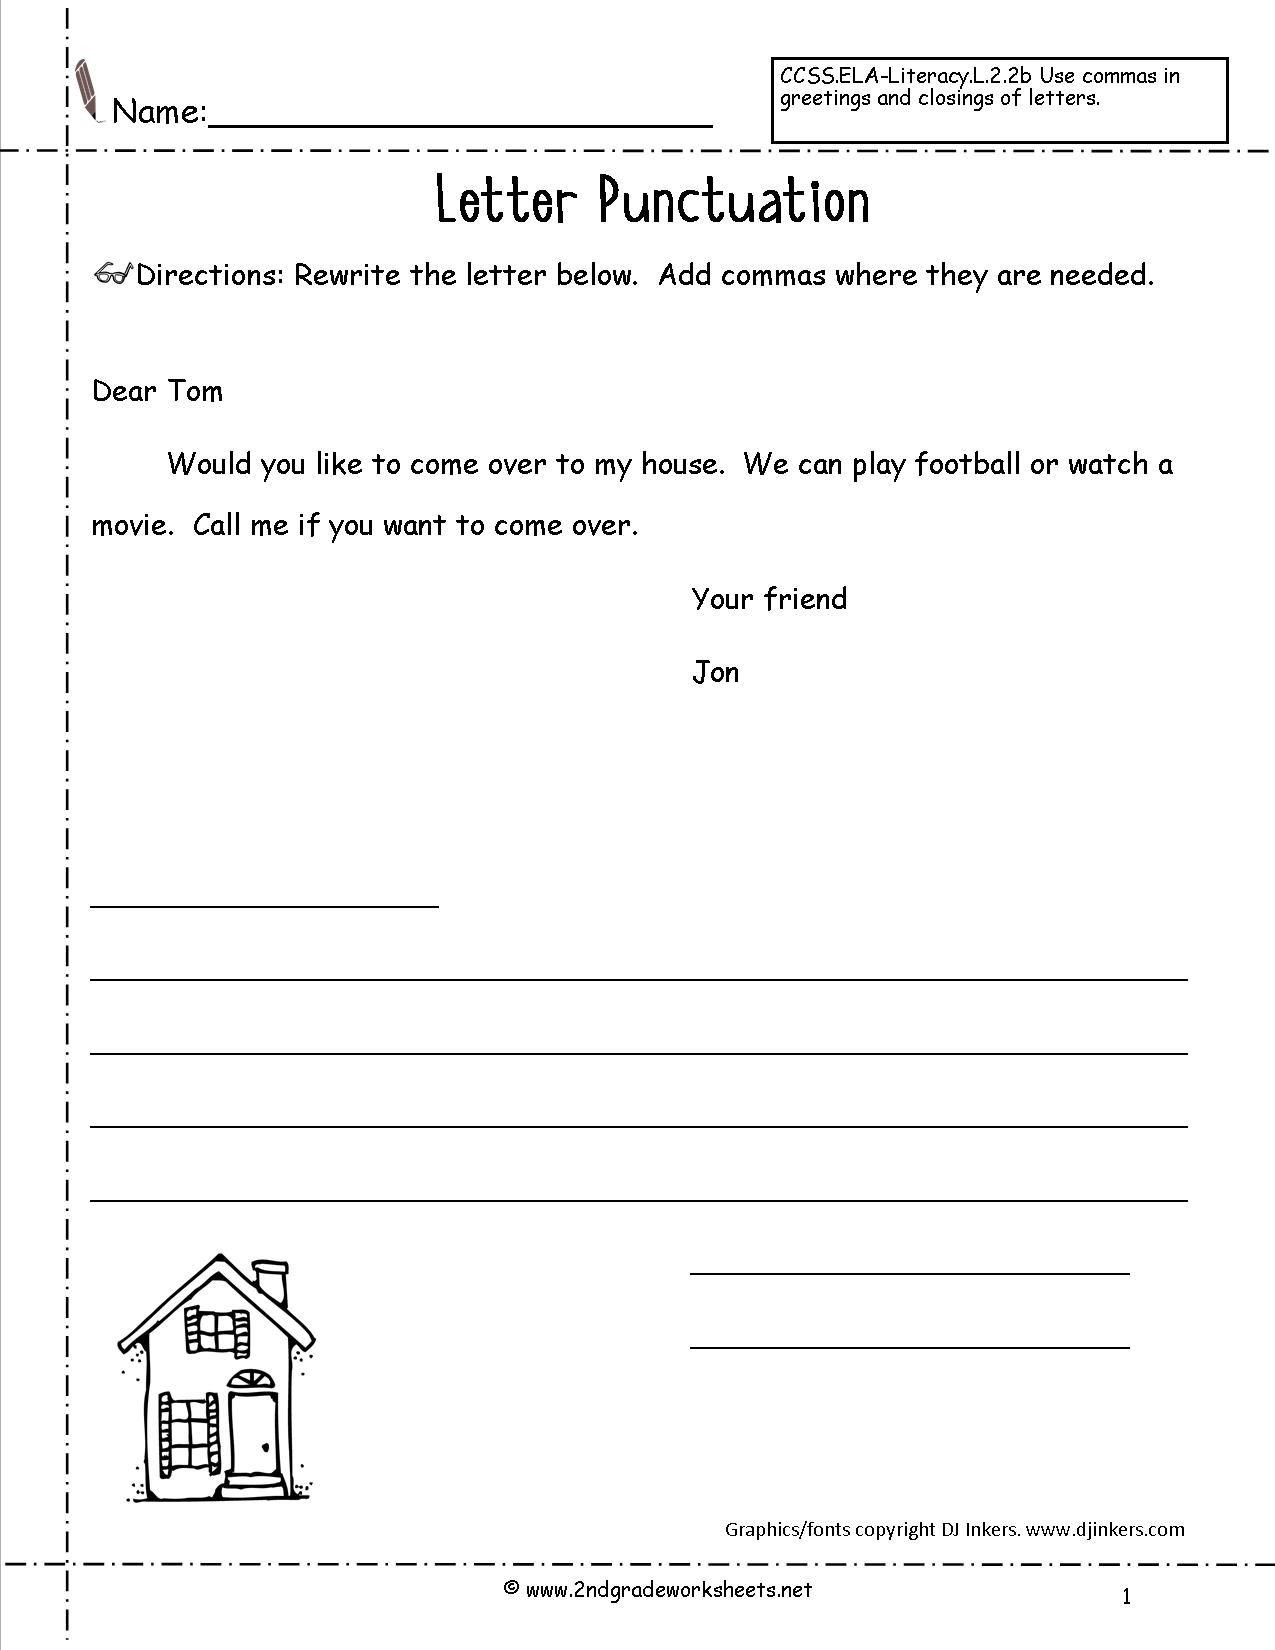 Dialogue Worksheets 3rd Grade Letters and Parts Of A Letter Worksheet